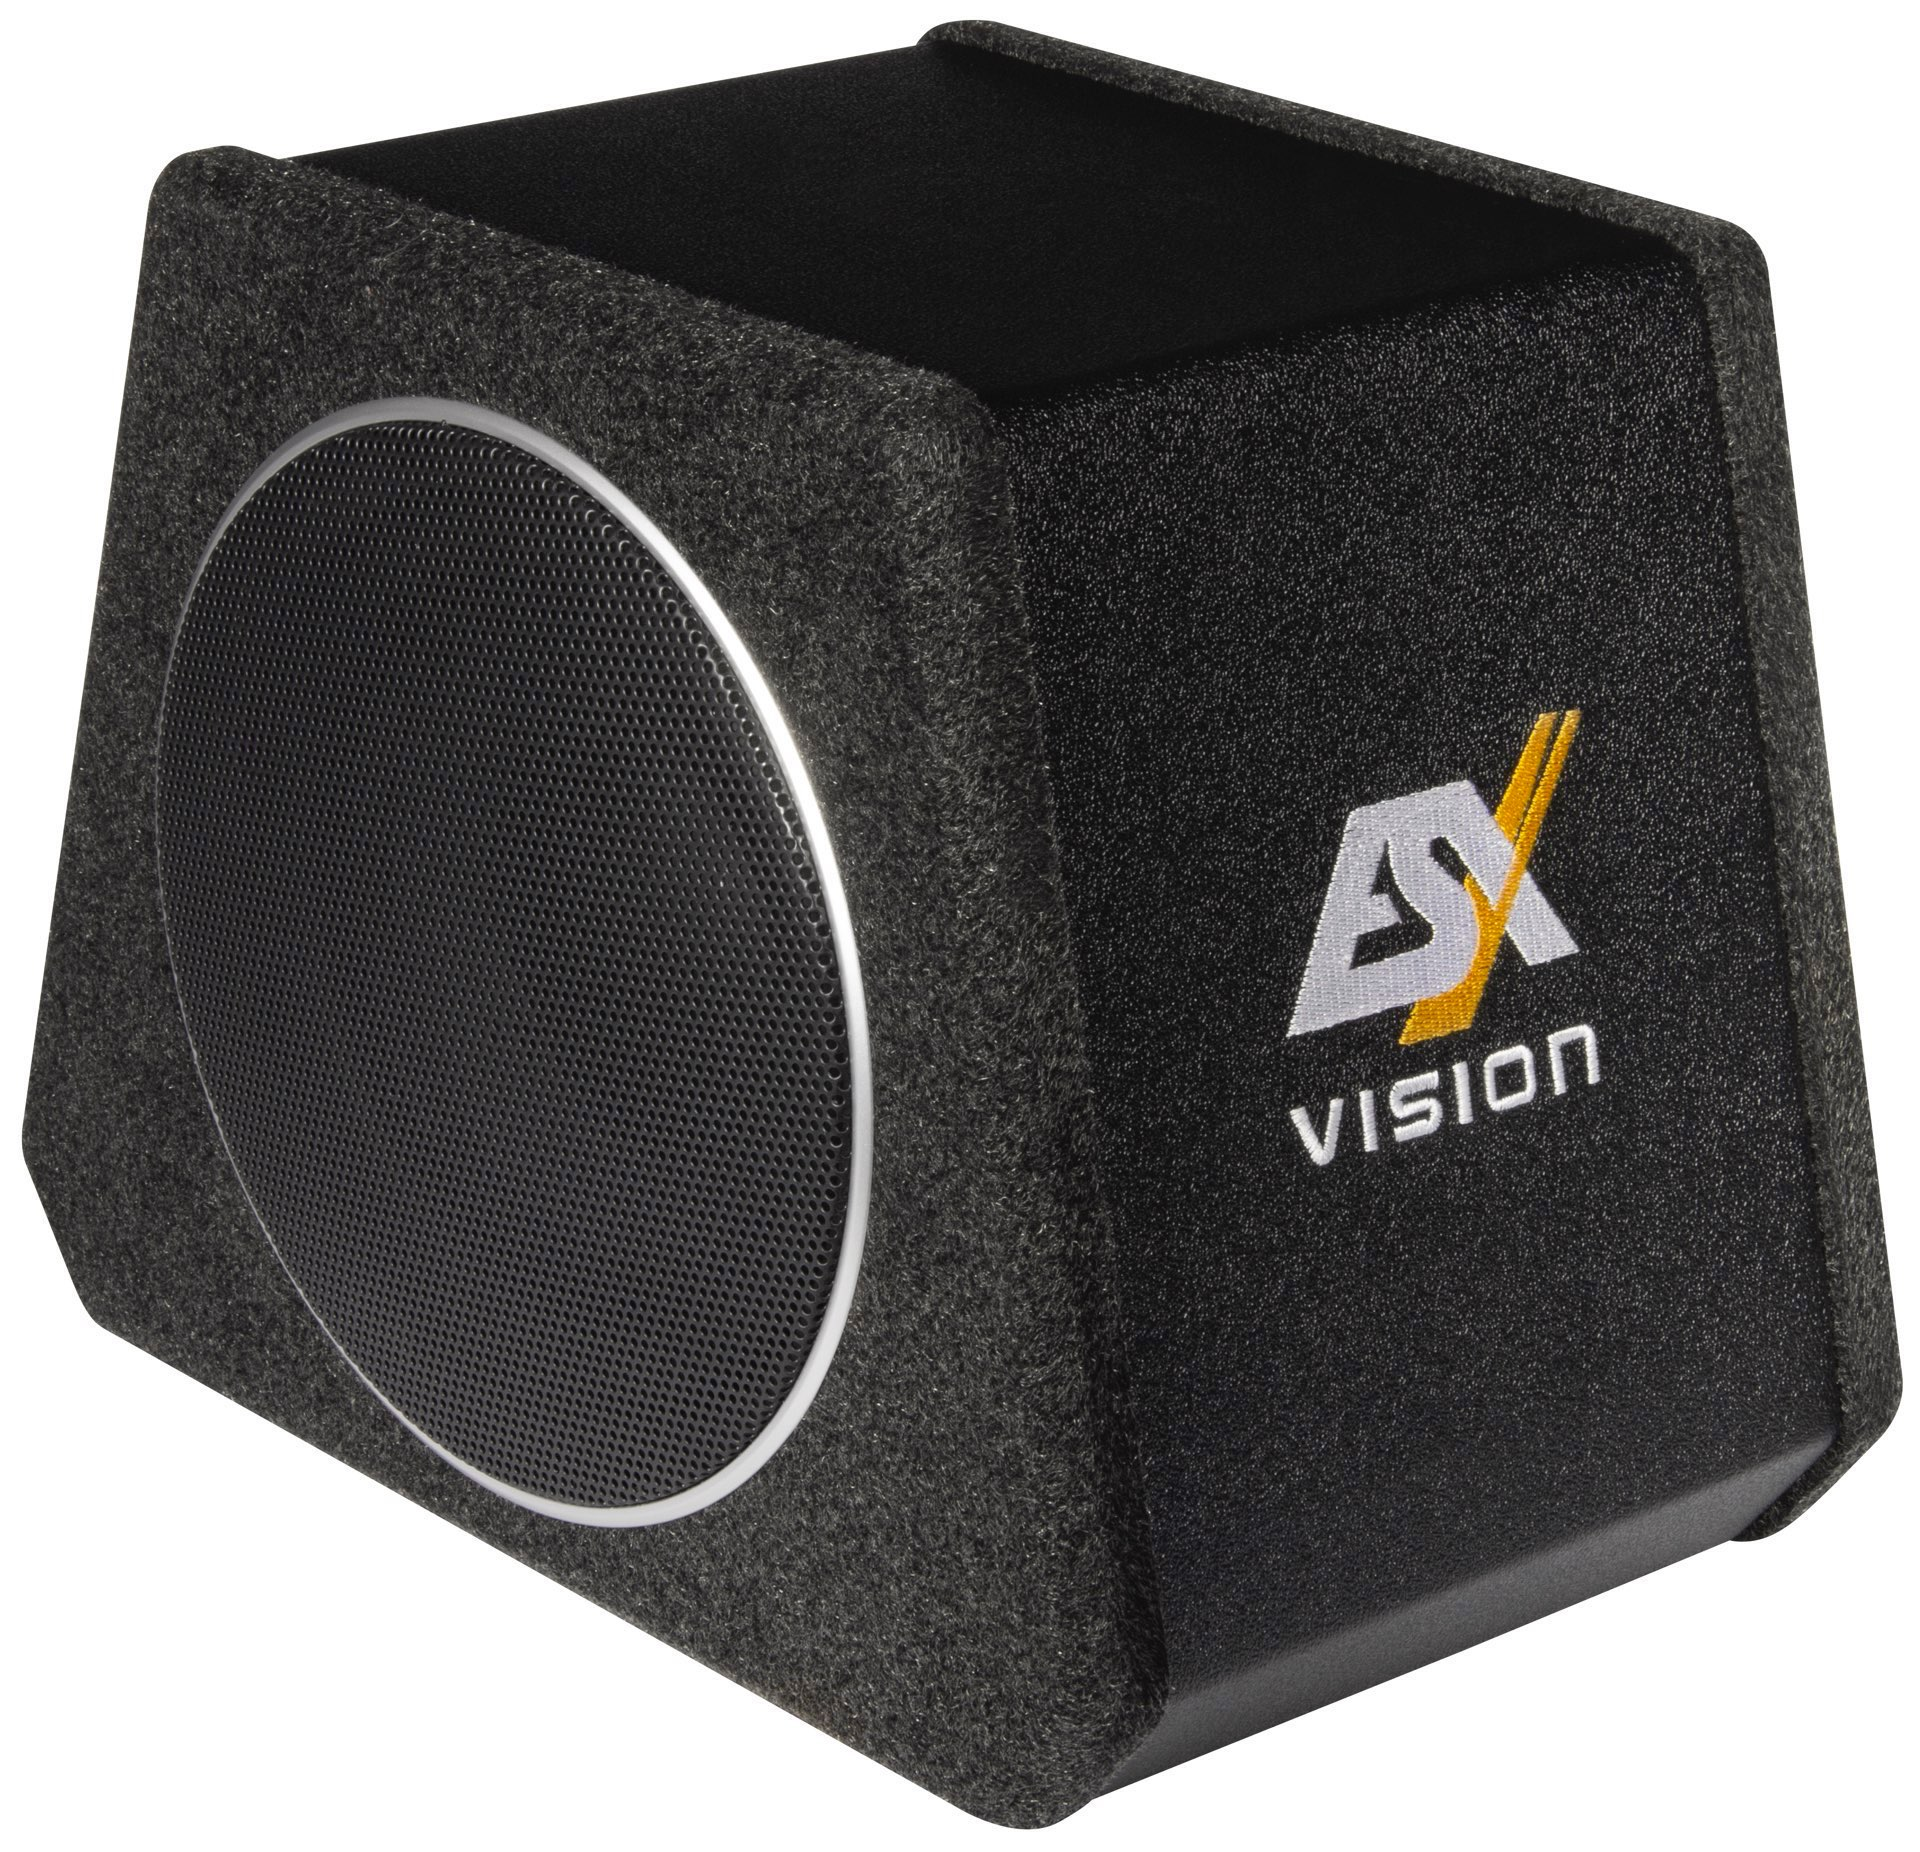 esx aktiv subwoofer bassbox v800a 400w. Black Bedroom Furniture Sets. Home Design Ideas